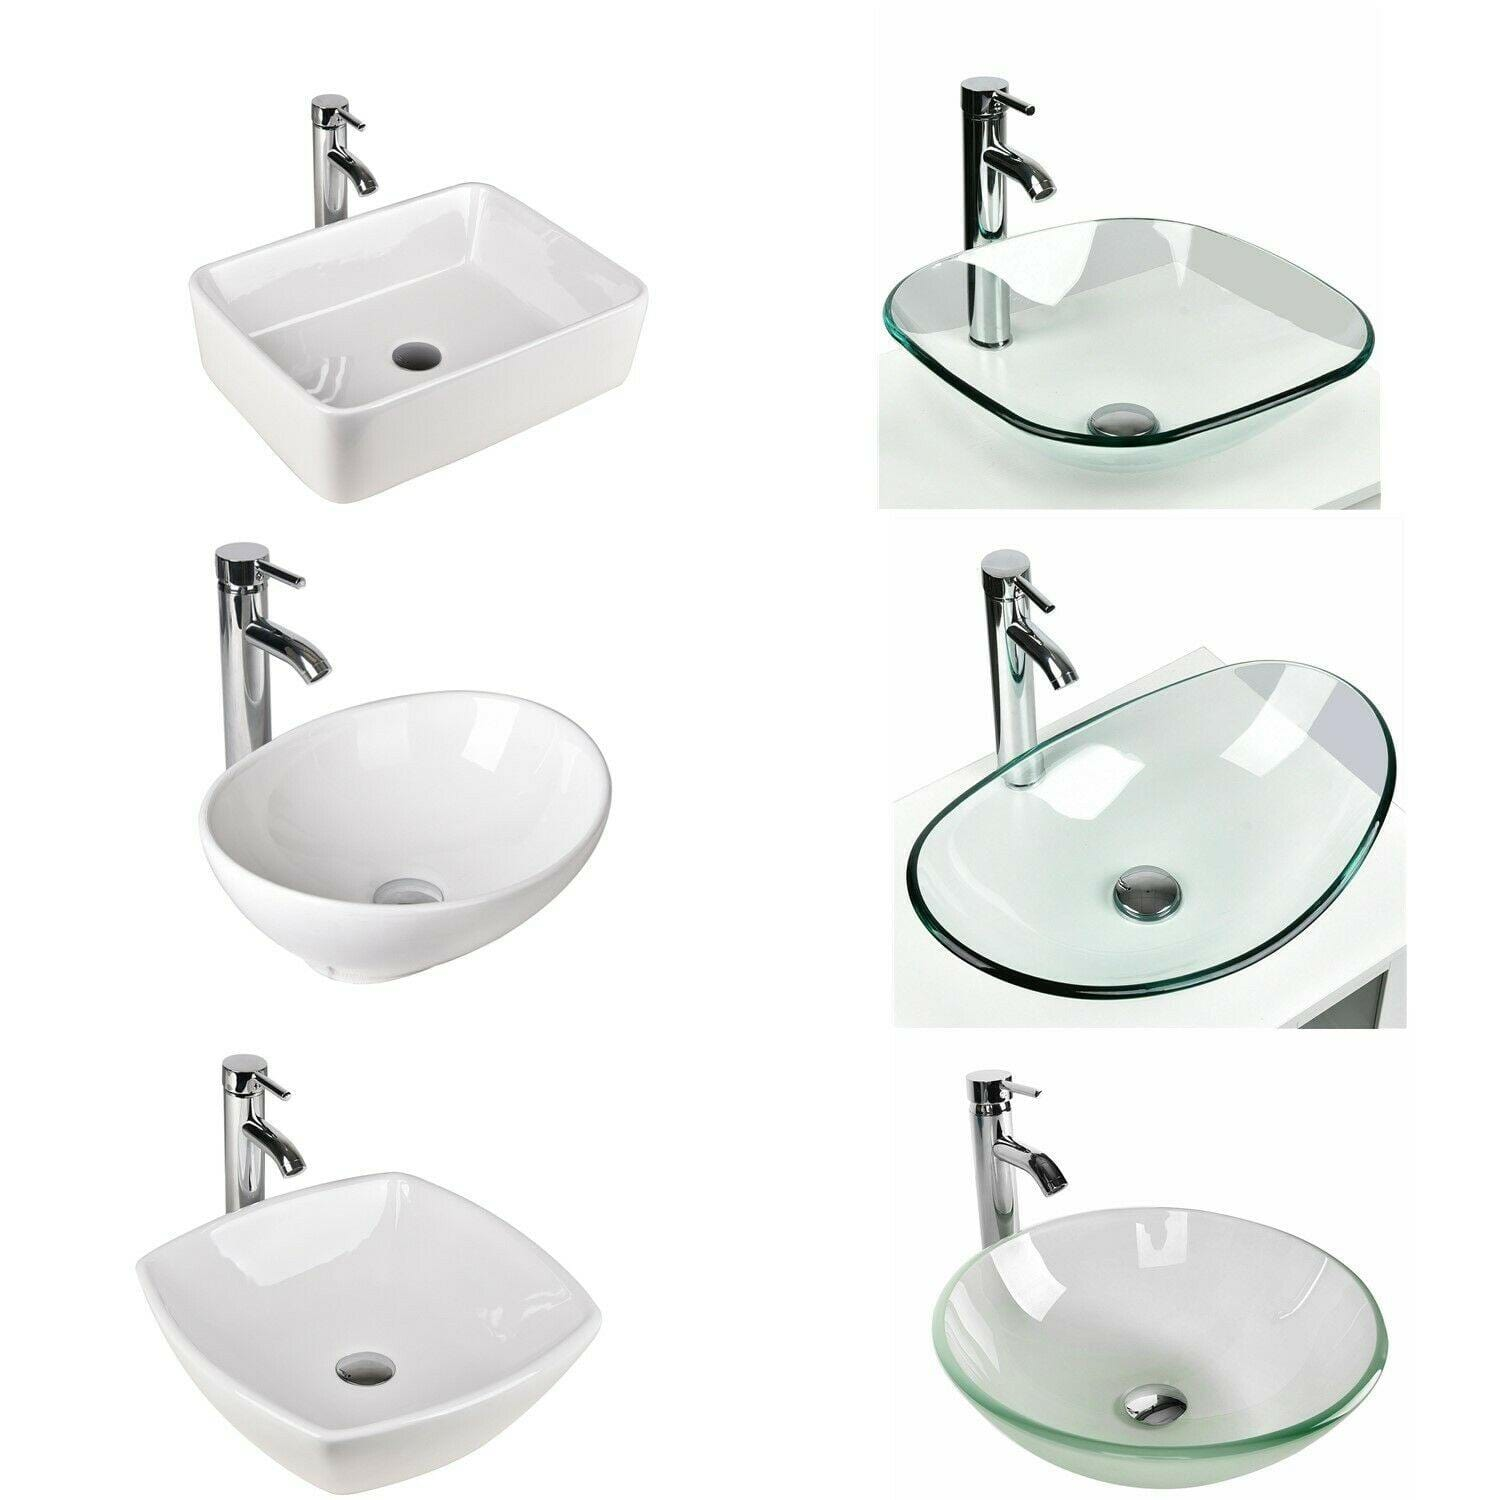 PULUOMIS  Bathroom Glass Ceramic Vessel Sink, Beautifully Coordinated Look and Easy-to-Clean